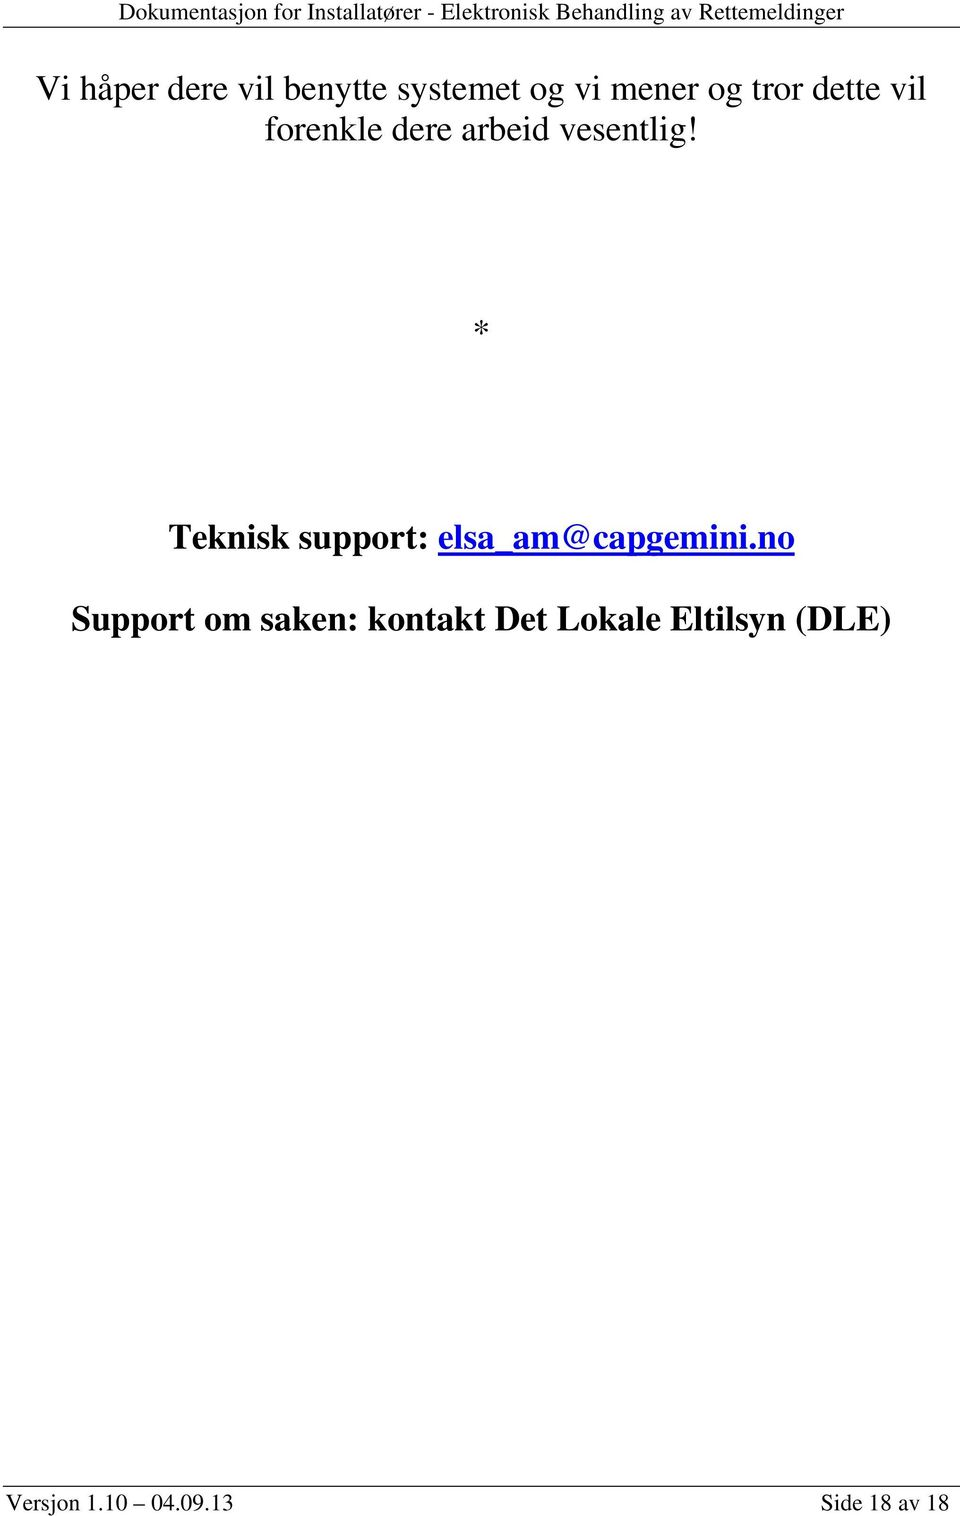 * Teknisk support: elsa_am@capgemini.